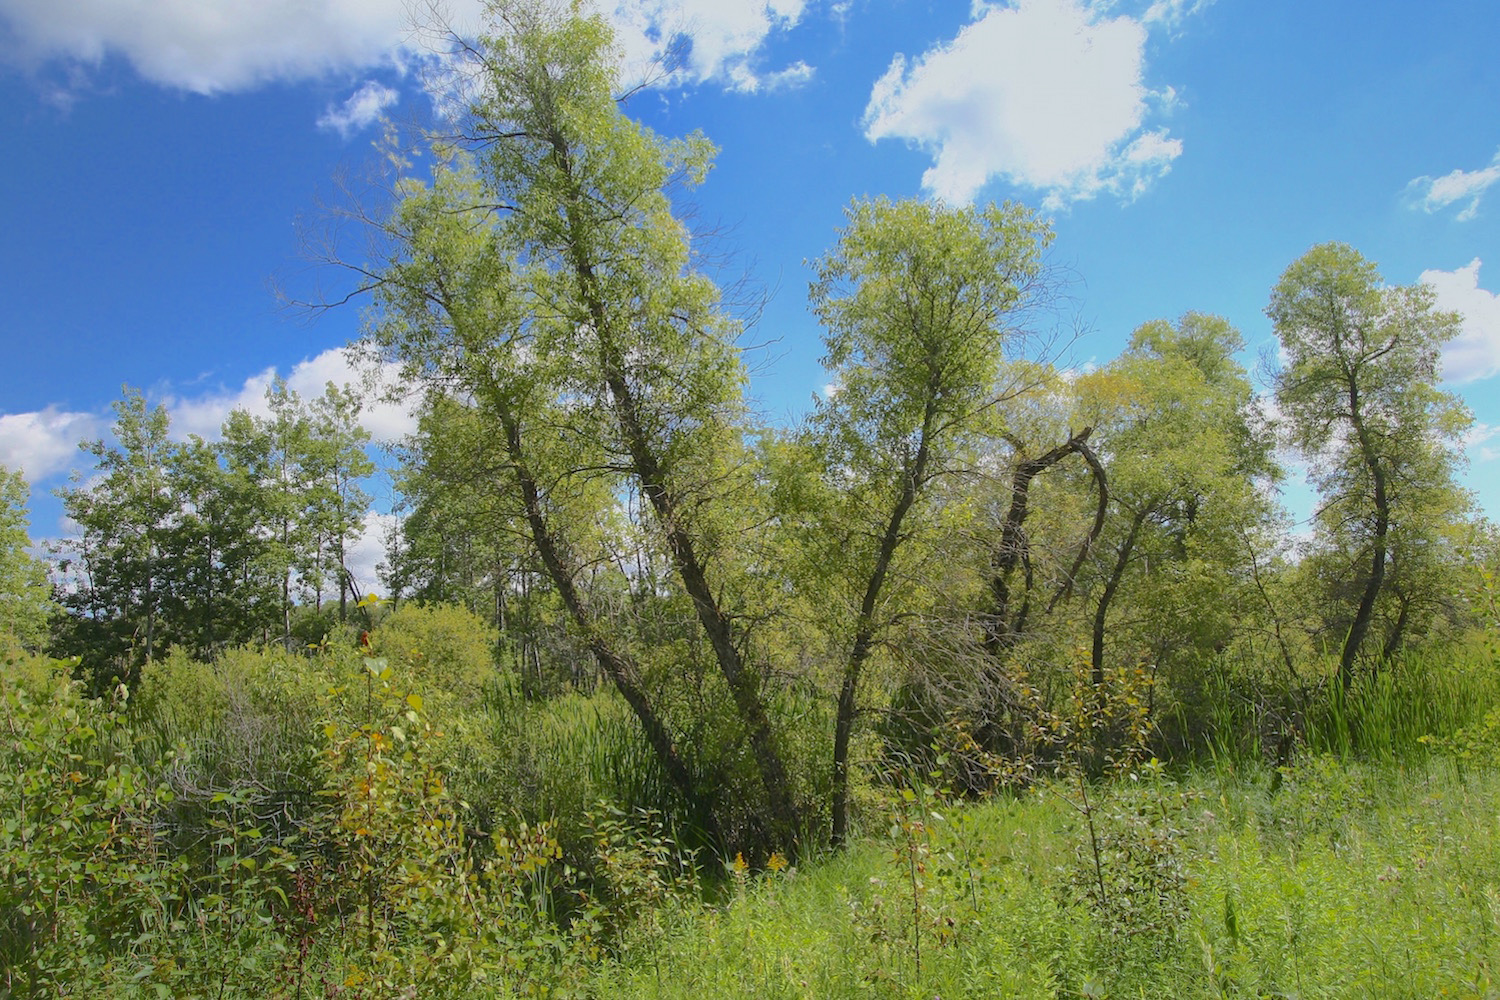 The old willows (genus  Salix ) that grow from the embankment of the smaller marsh near the center of the acreage...